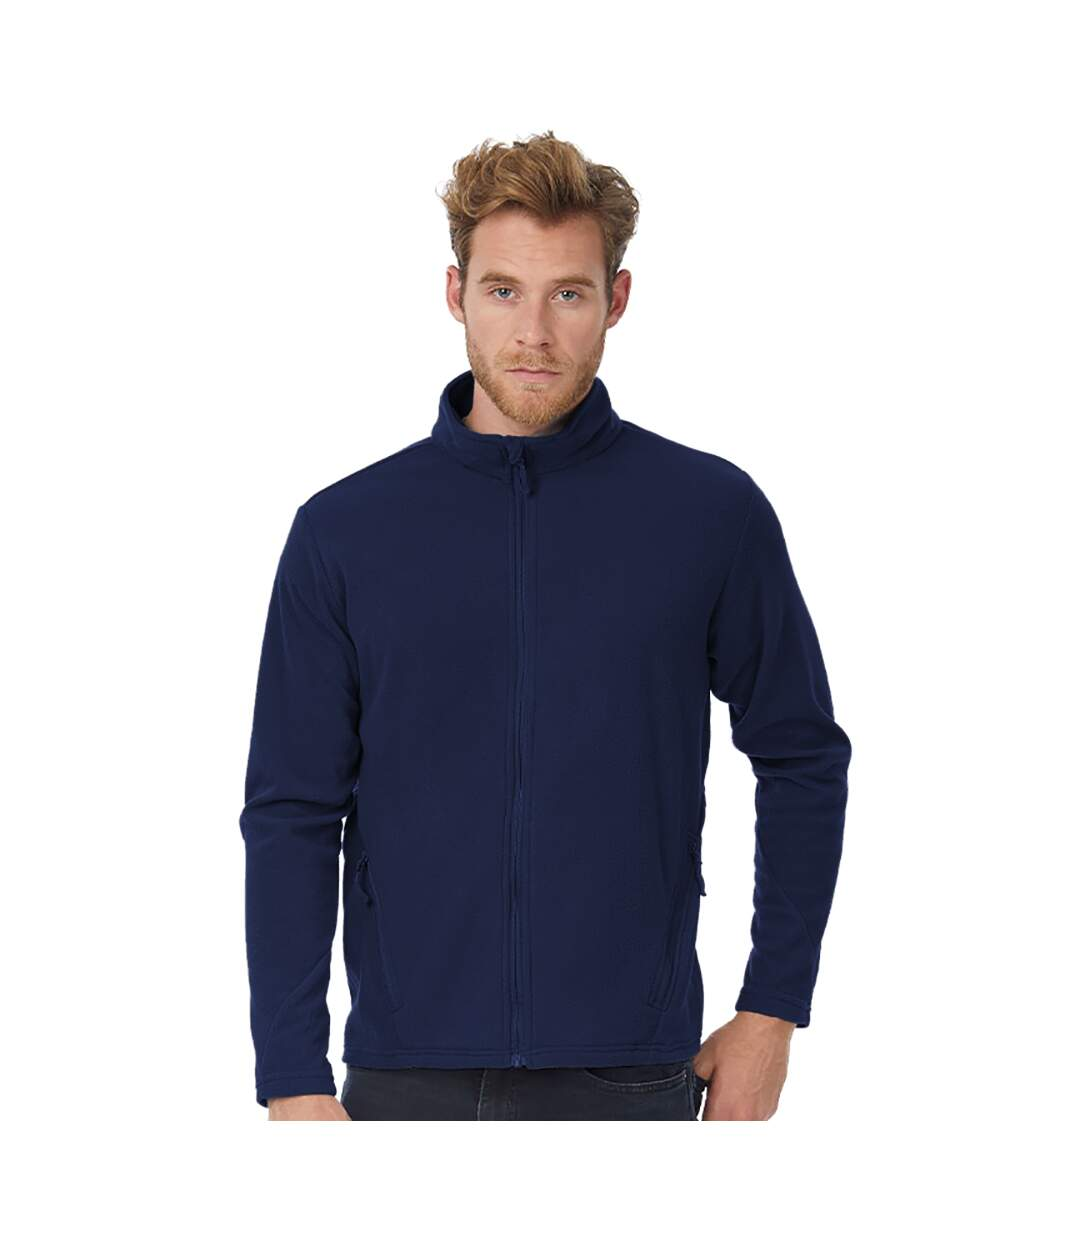 B&C Mens Coolstar Ultra Light Full Zip Fleece Top (Navy) - UTRW3033